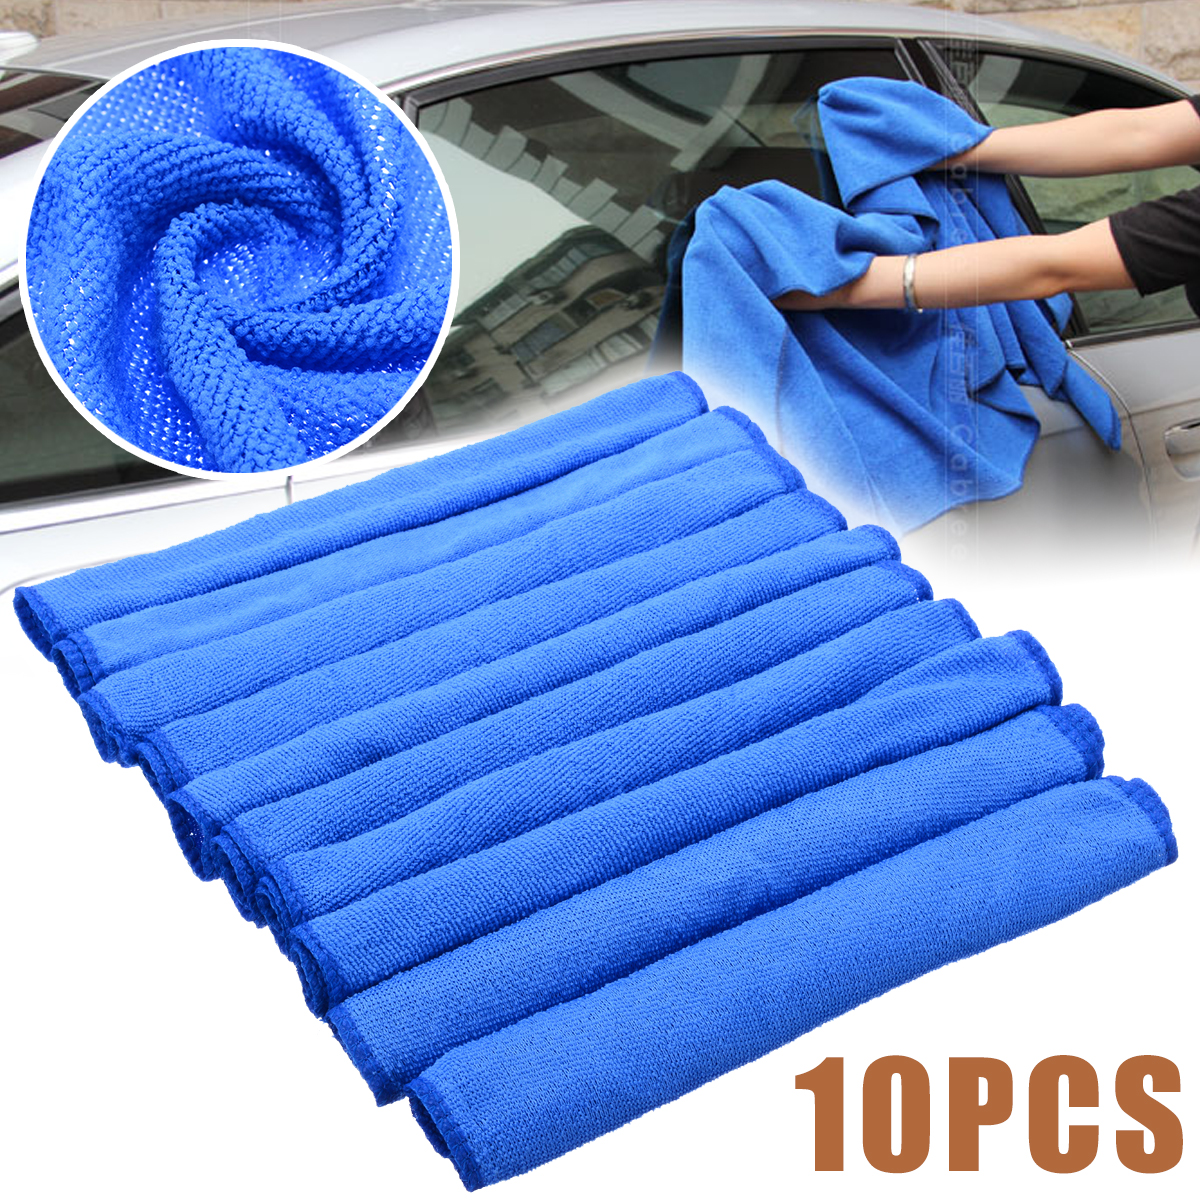 10pcs Blue Microfiber Cleaning 30*30cm Auto Car Detailing Soft Microfiber Cloths Wash Towel Duster Home Cleaning Tools-in Car Washer from Automobiles & Motorcycles